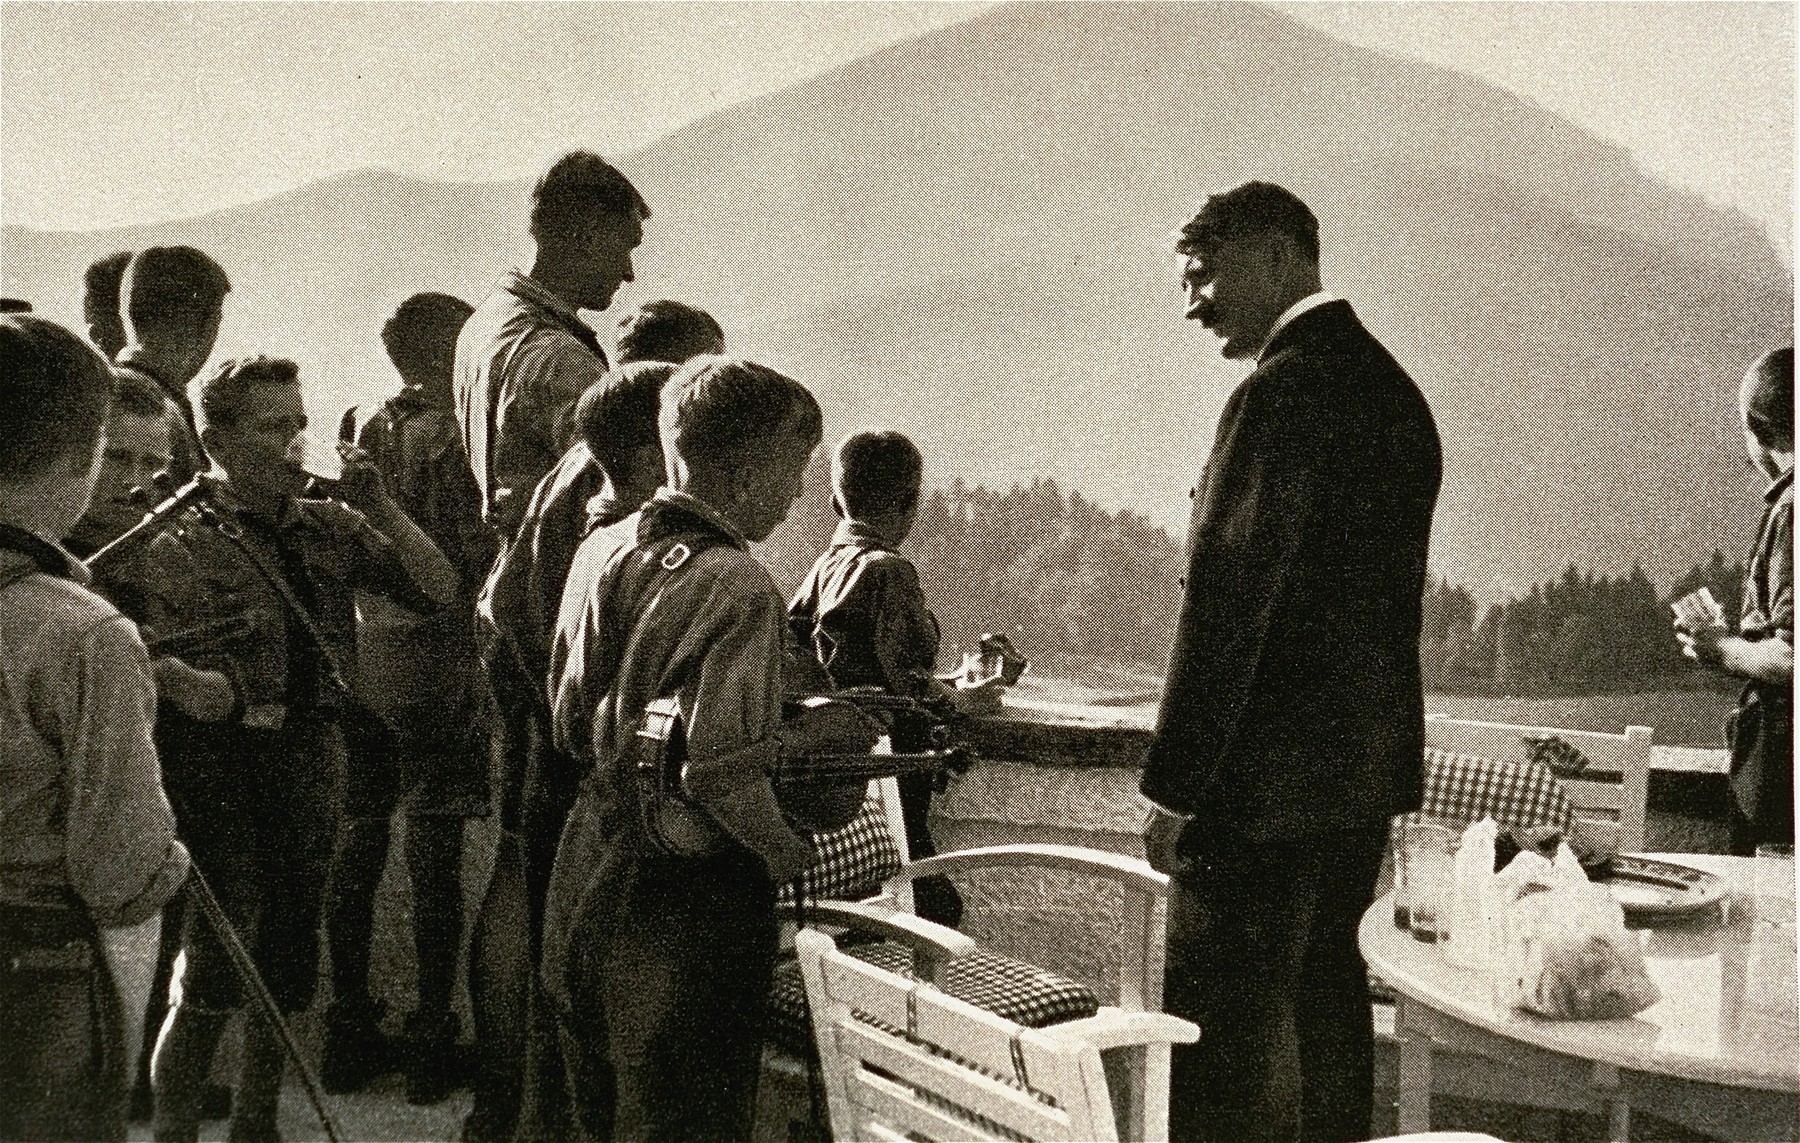 Adolf Hitler meets with members of a Hitler Youth orchestra at the Berghof.